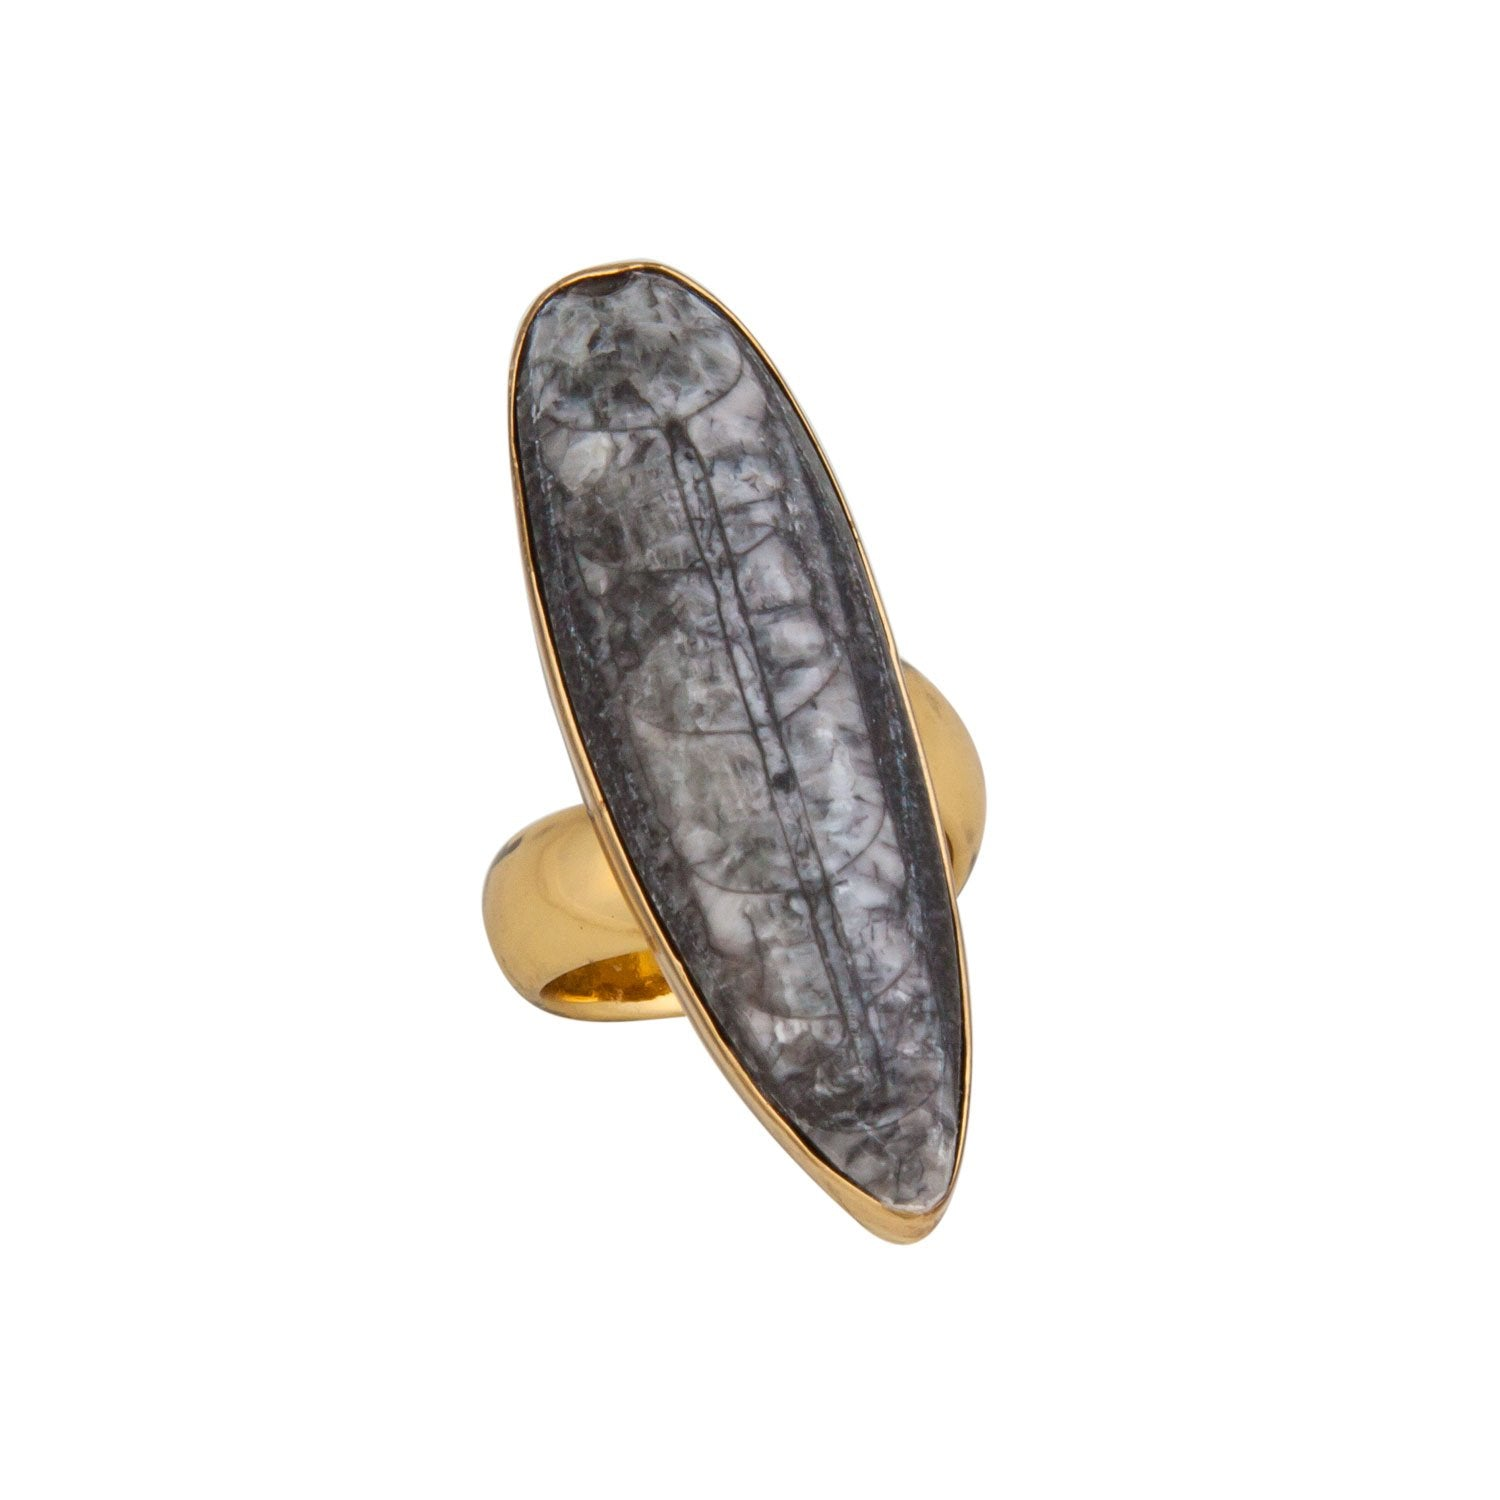 Alchemia Orthoceras Adjustable Ring